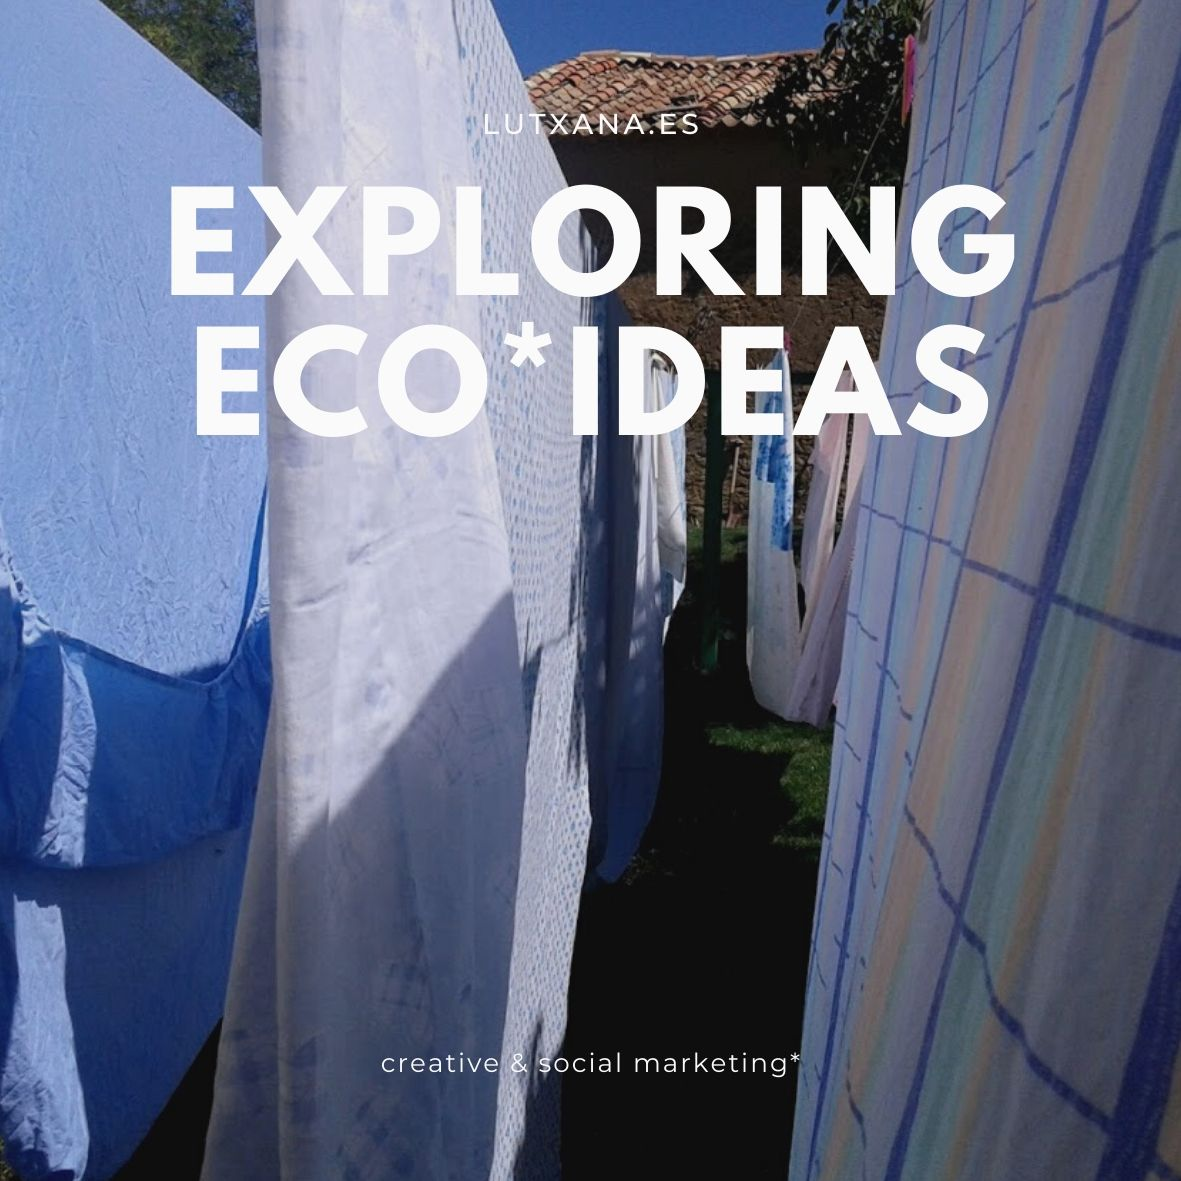 marketing digital pymes economia post covid explorar eco ideas marketing alternativo ecológico con causa